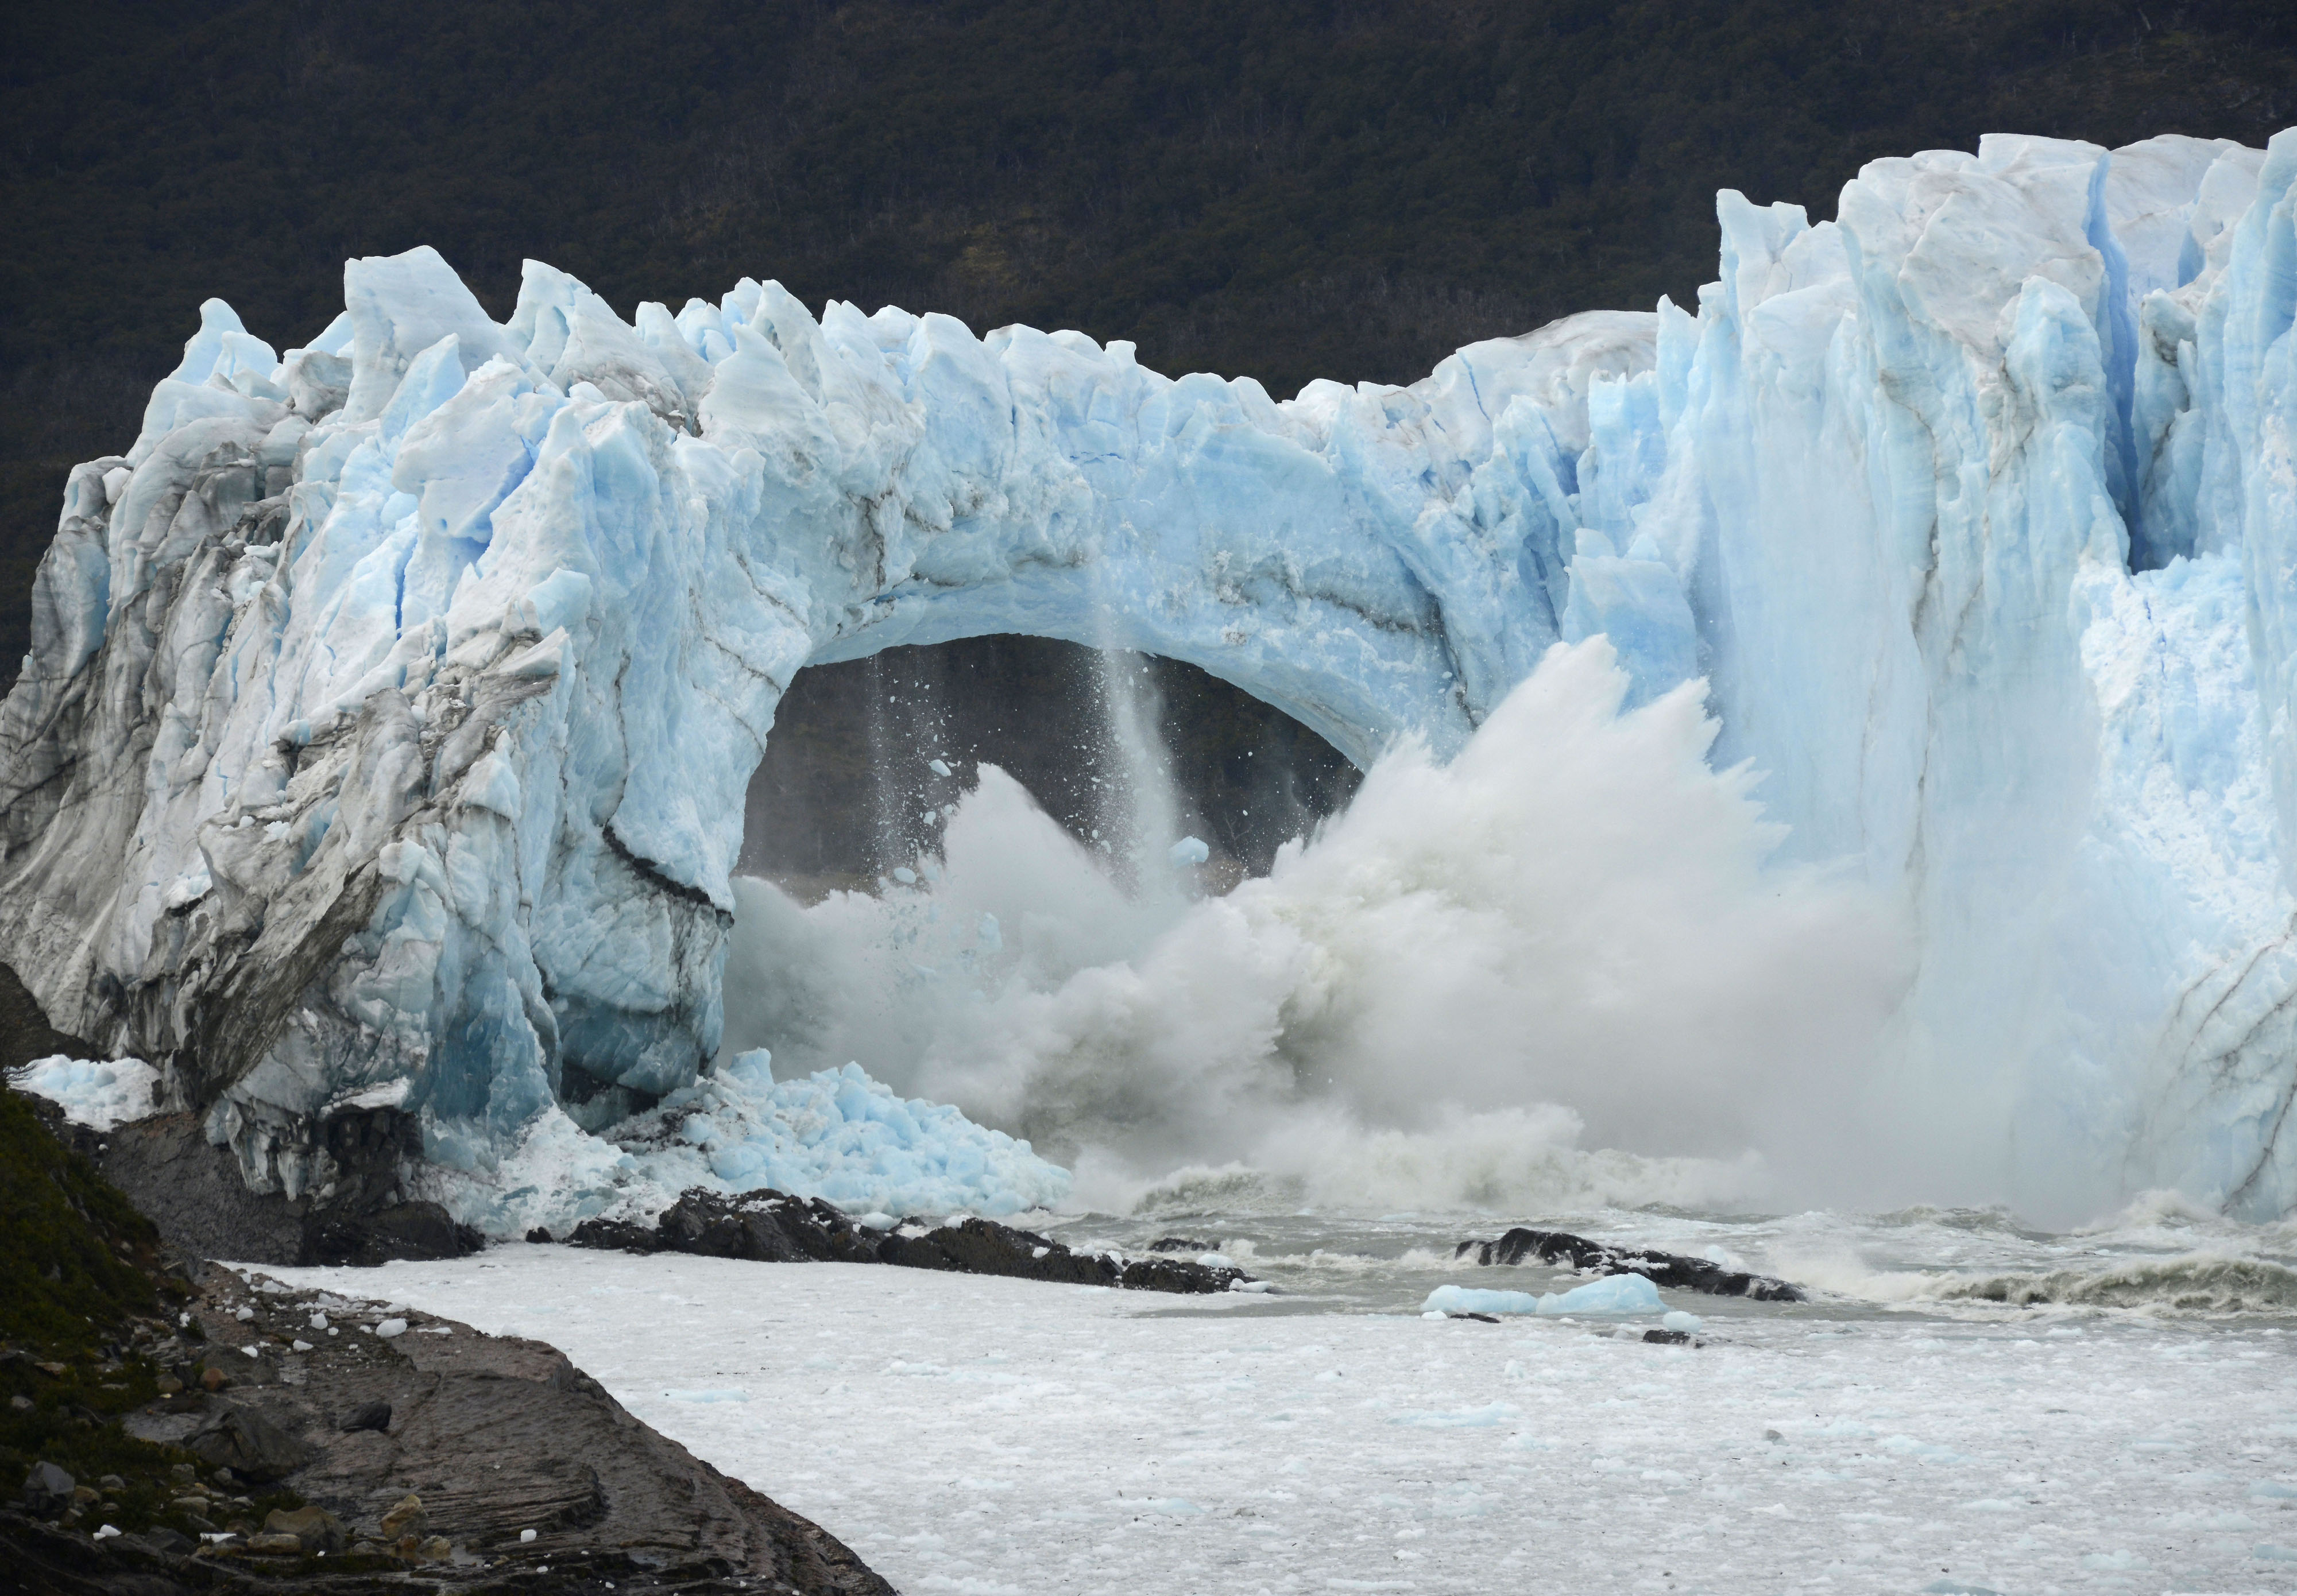 Scientists: Chile's Southern Patagonia Ice Field Ruptured